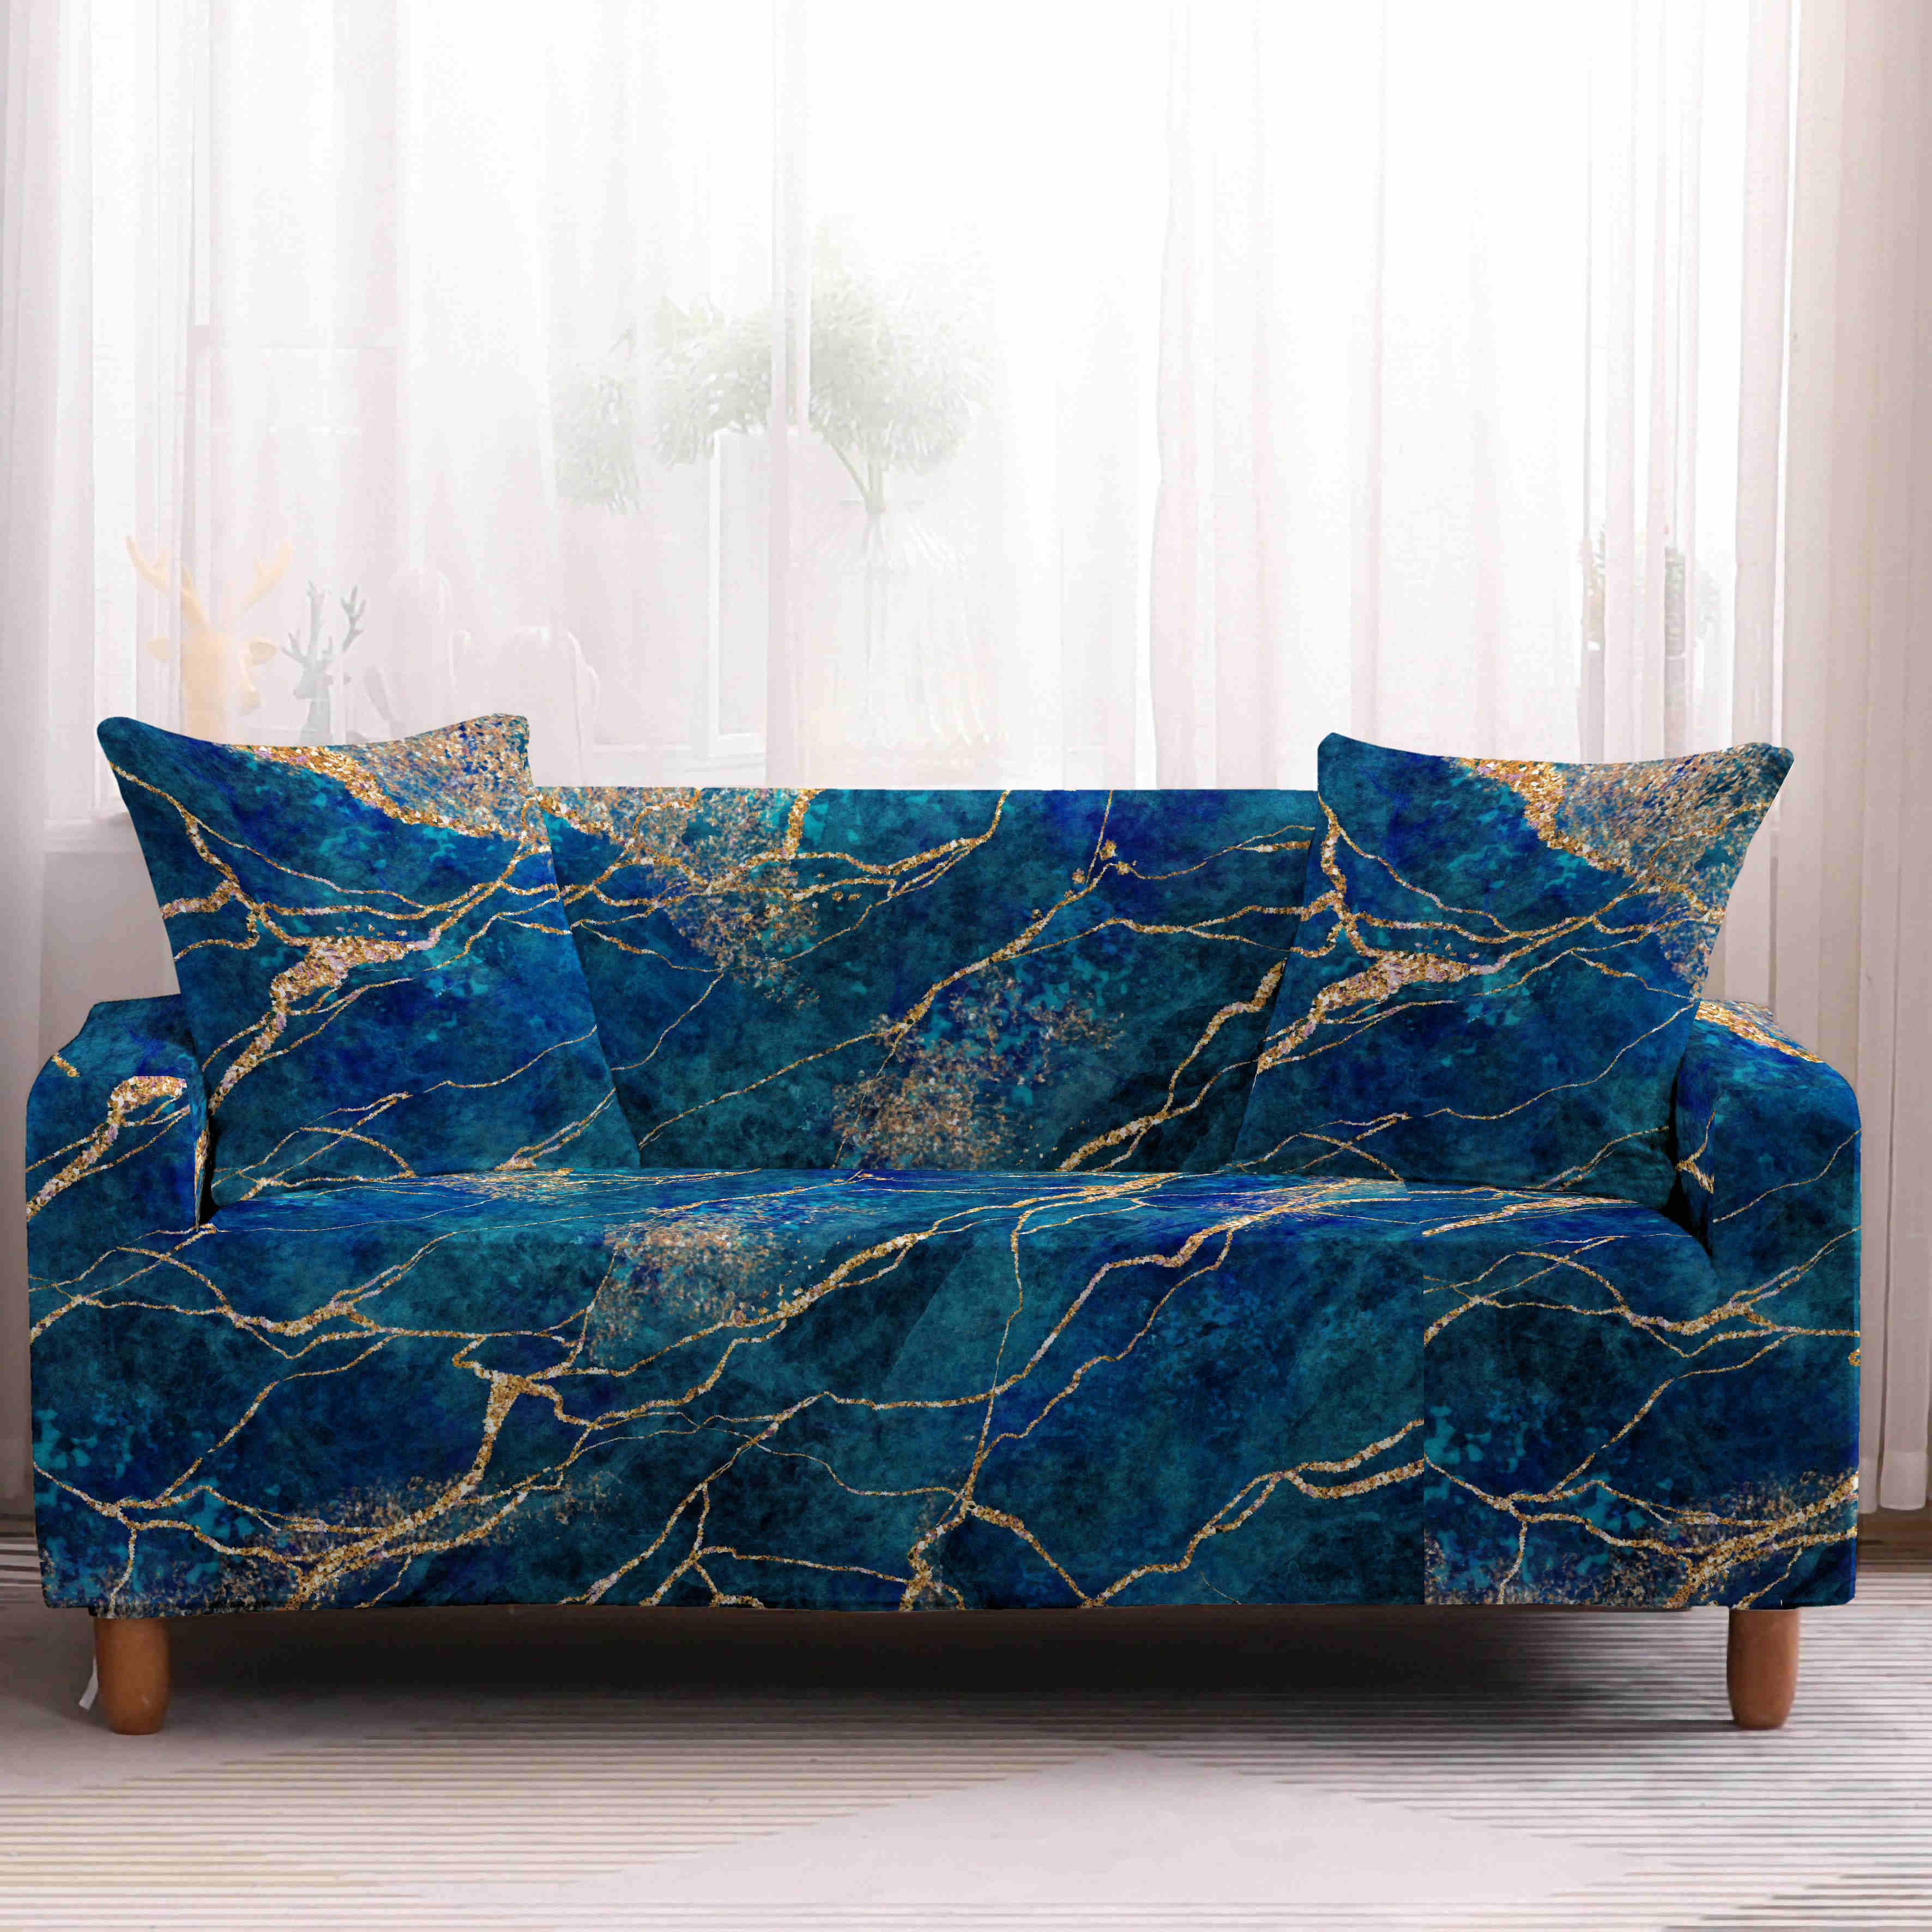 Stretch Sofa Covers 1 2 3 4 Seater Slipcover Couch Cover Protector Home Marble